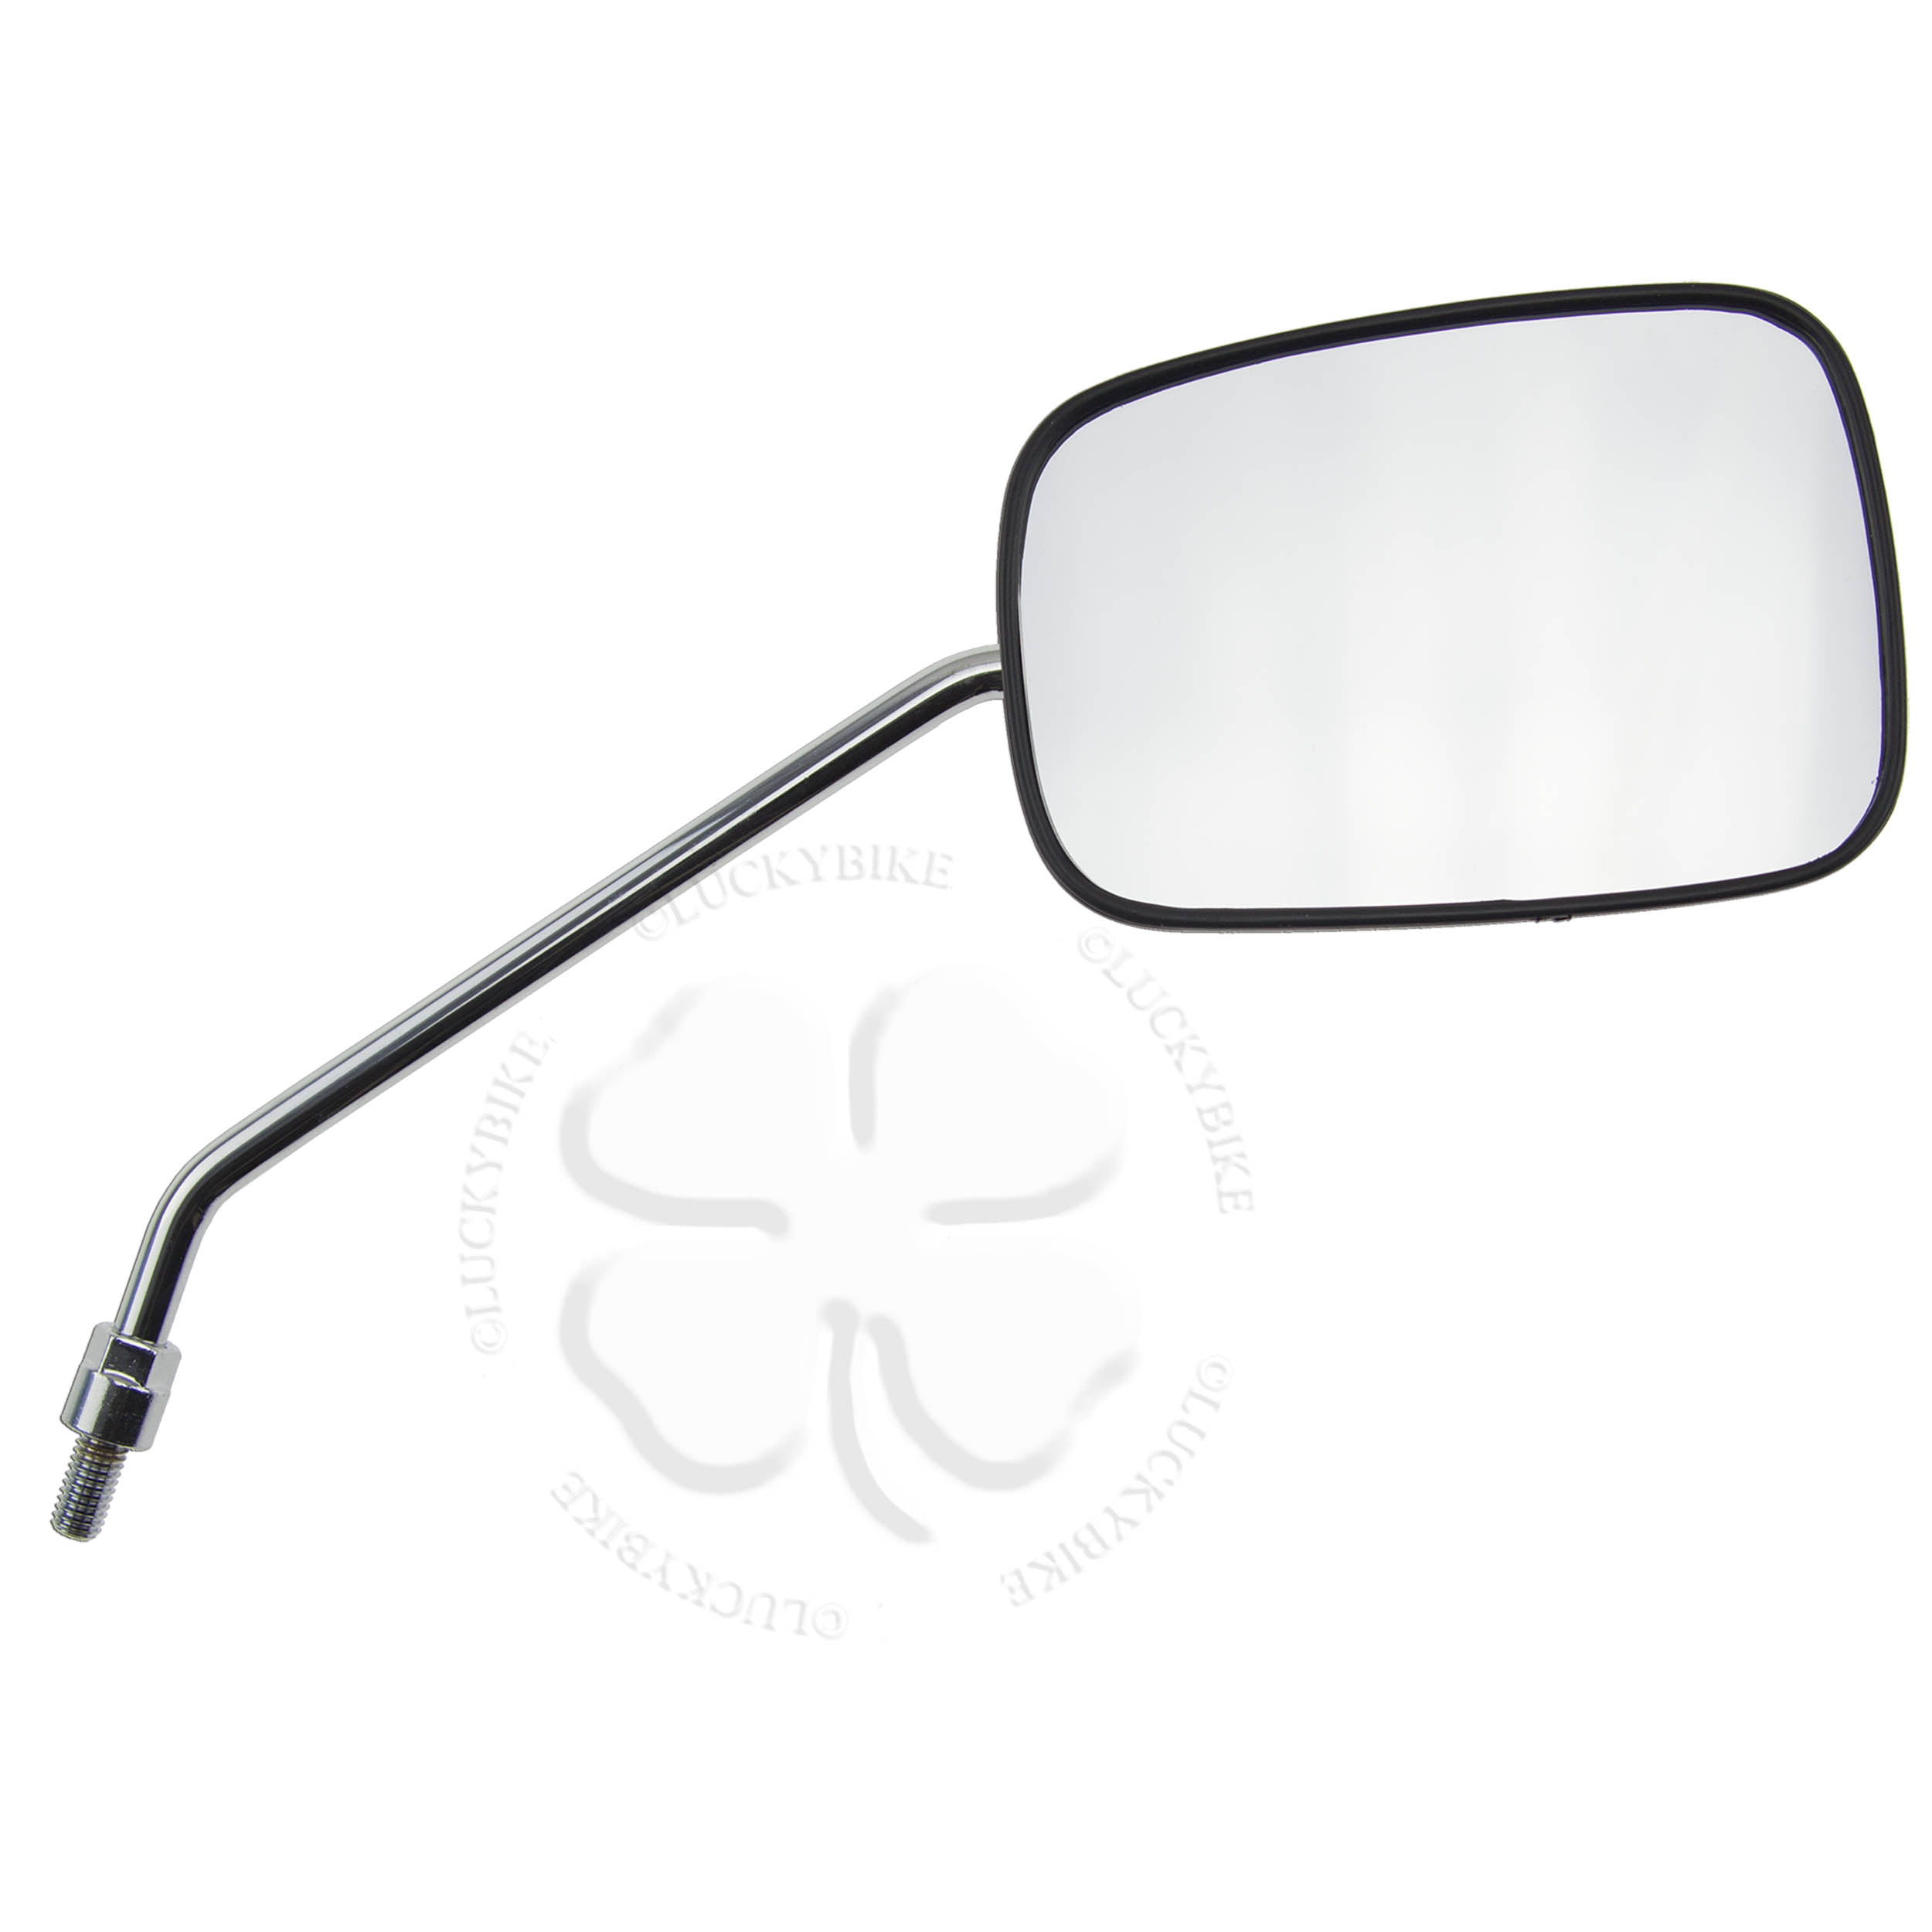 Black Oval Mirrors Mirror Set 8mm RH Thread Motorcycle Scooter Moped